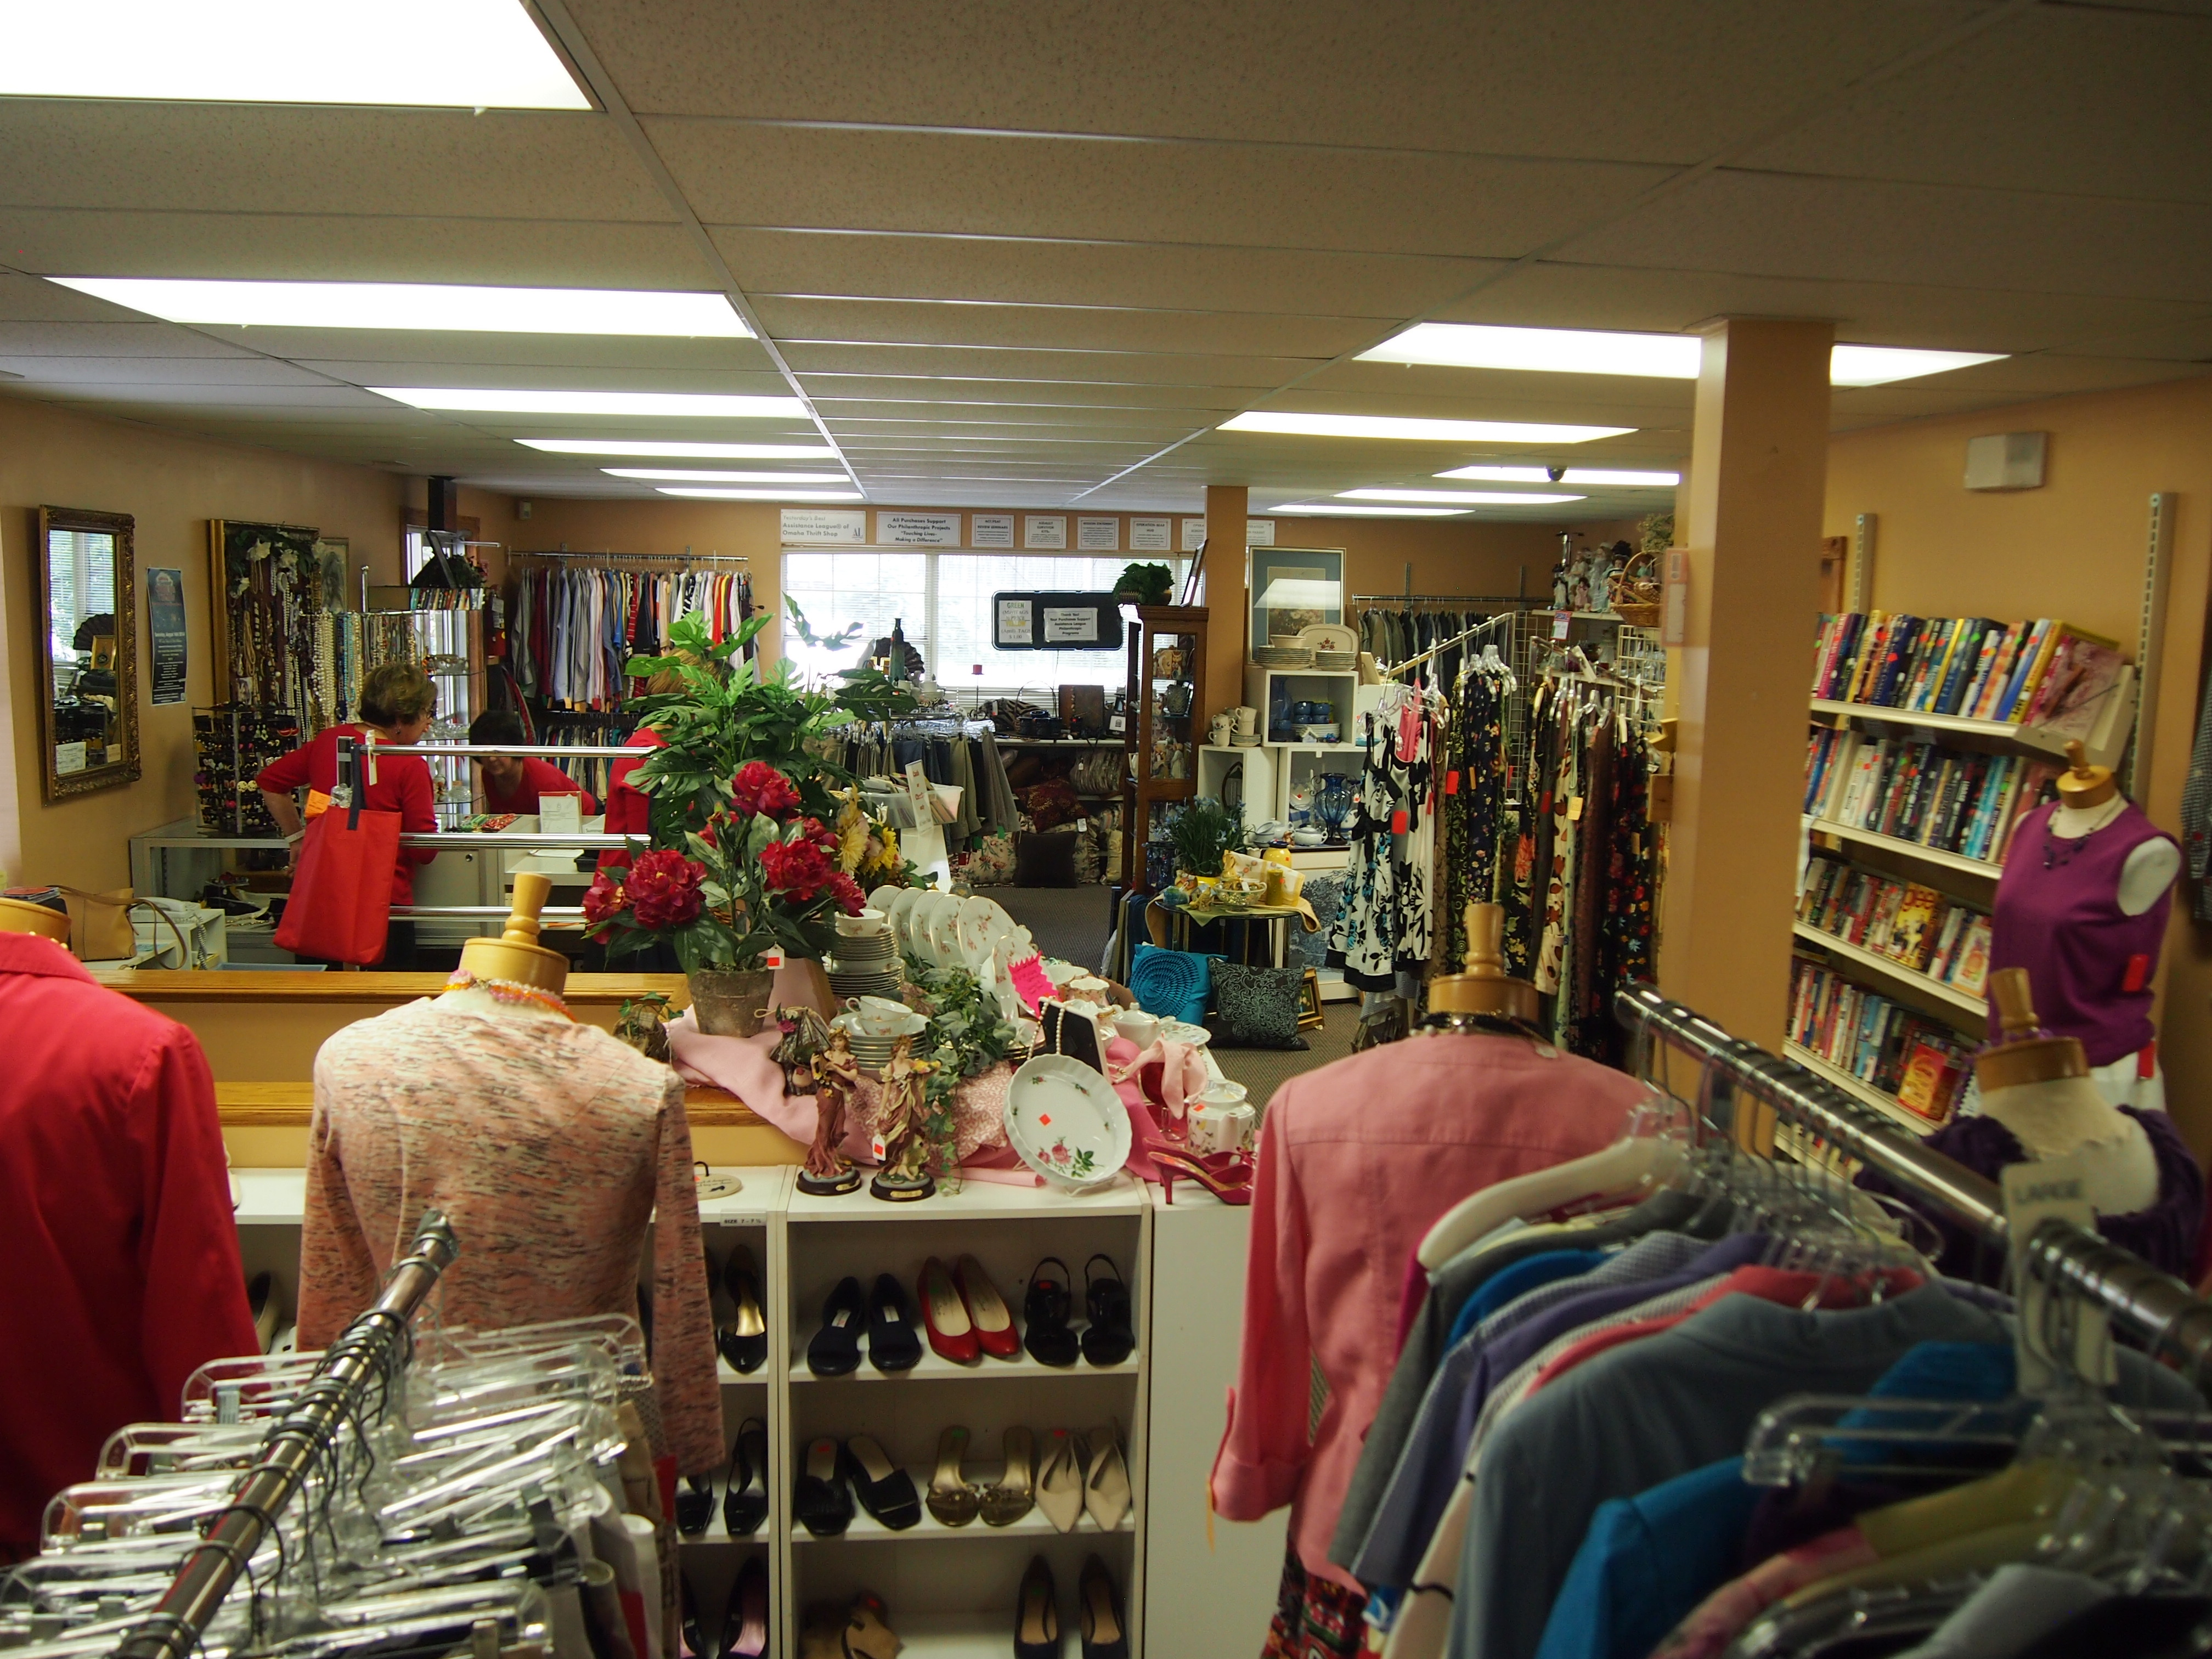 A Picture of the Shop